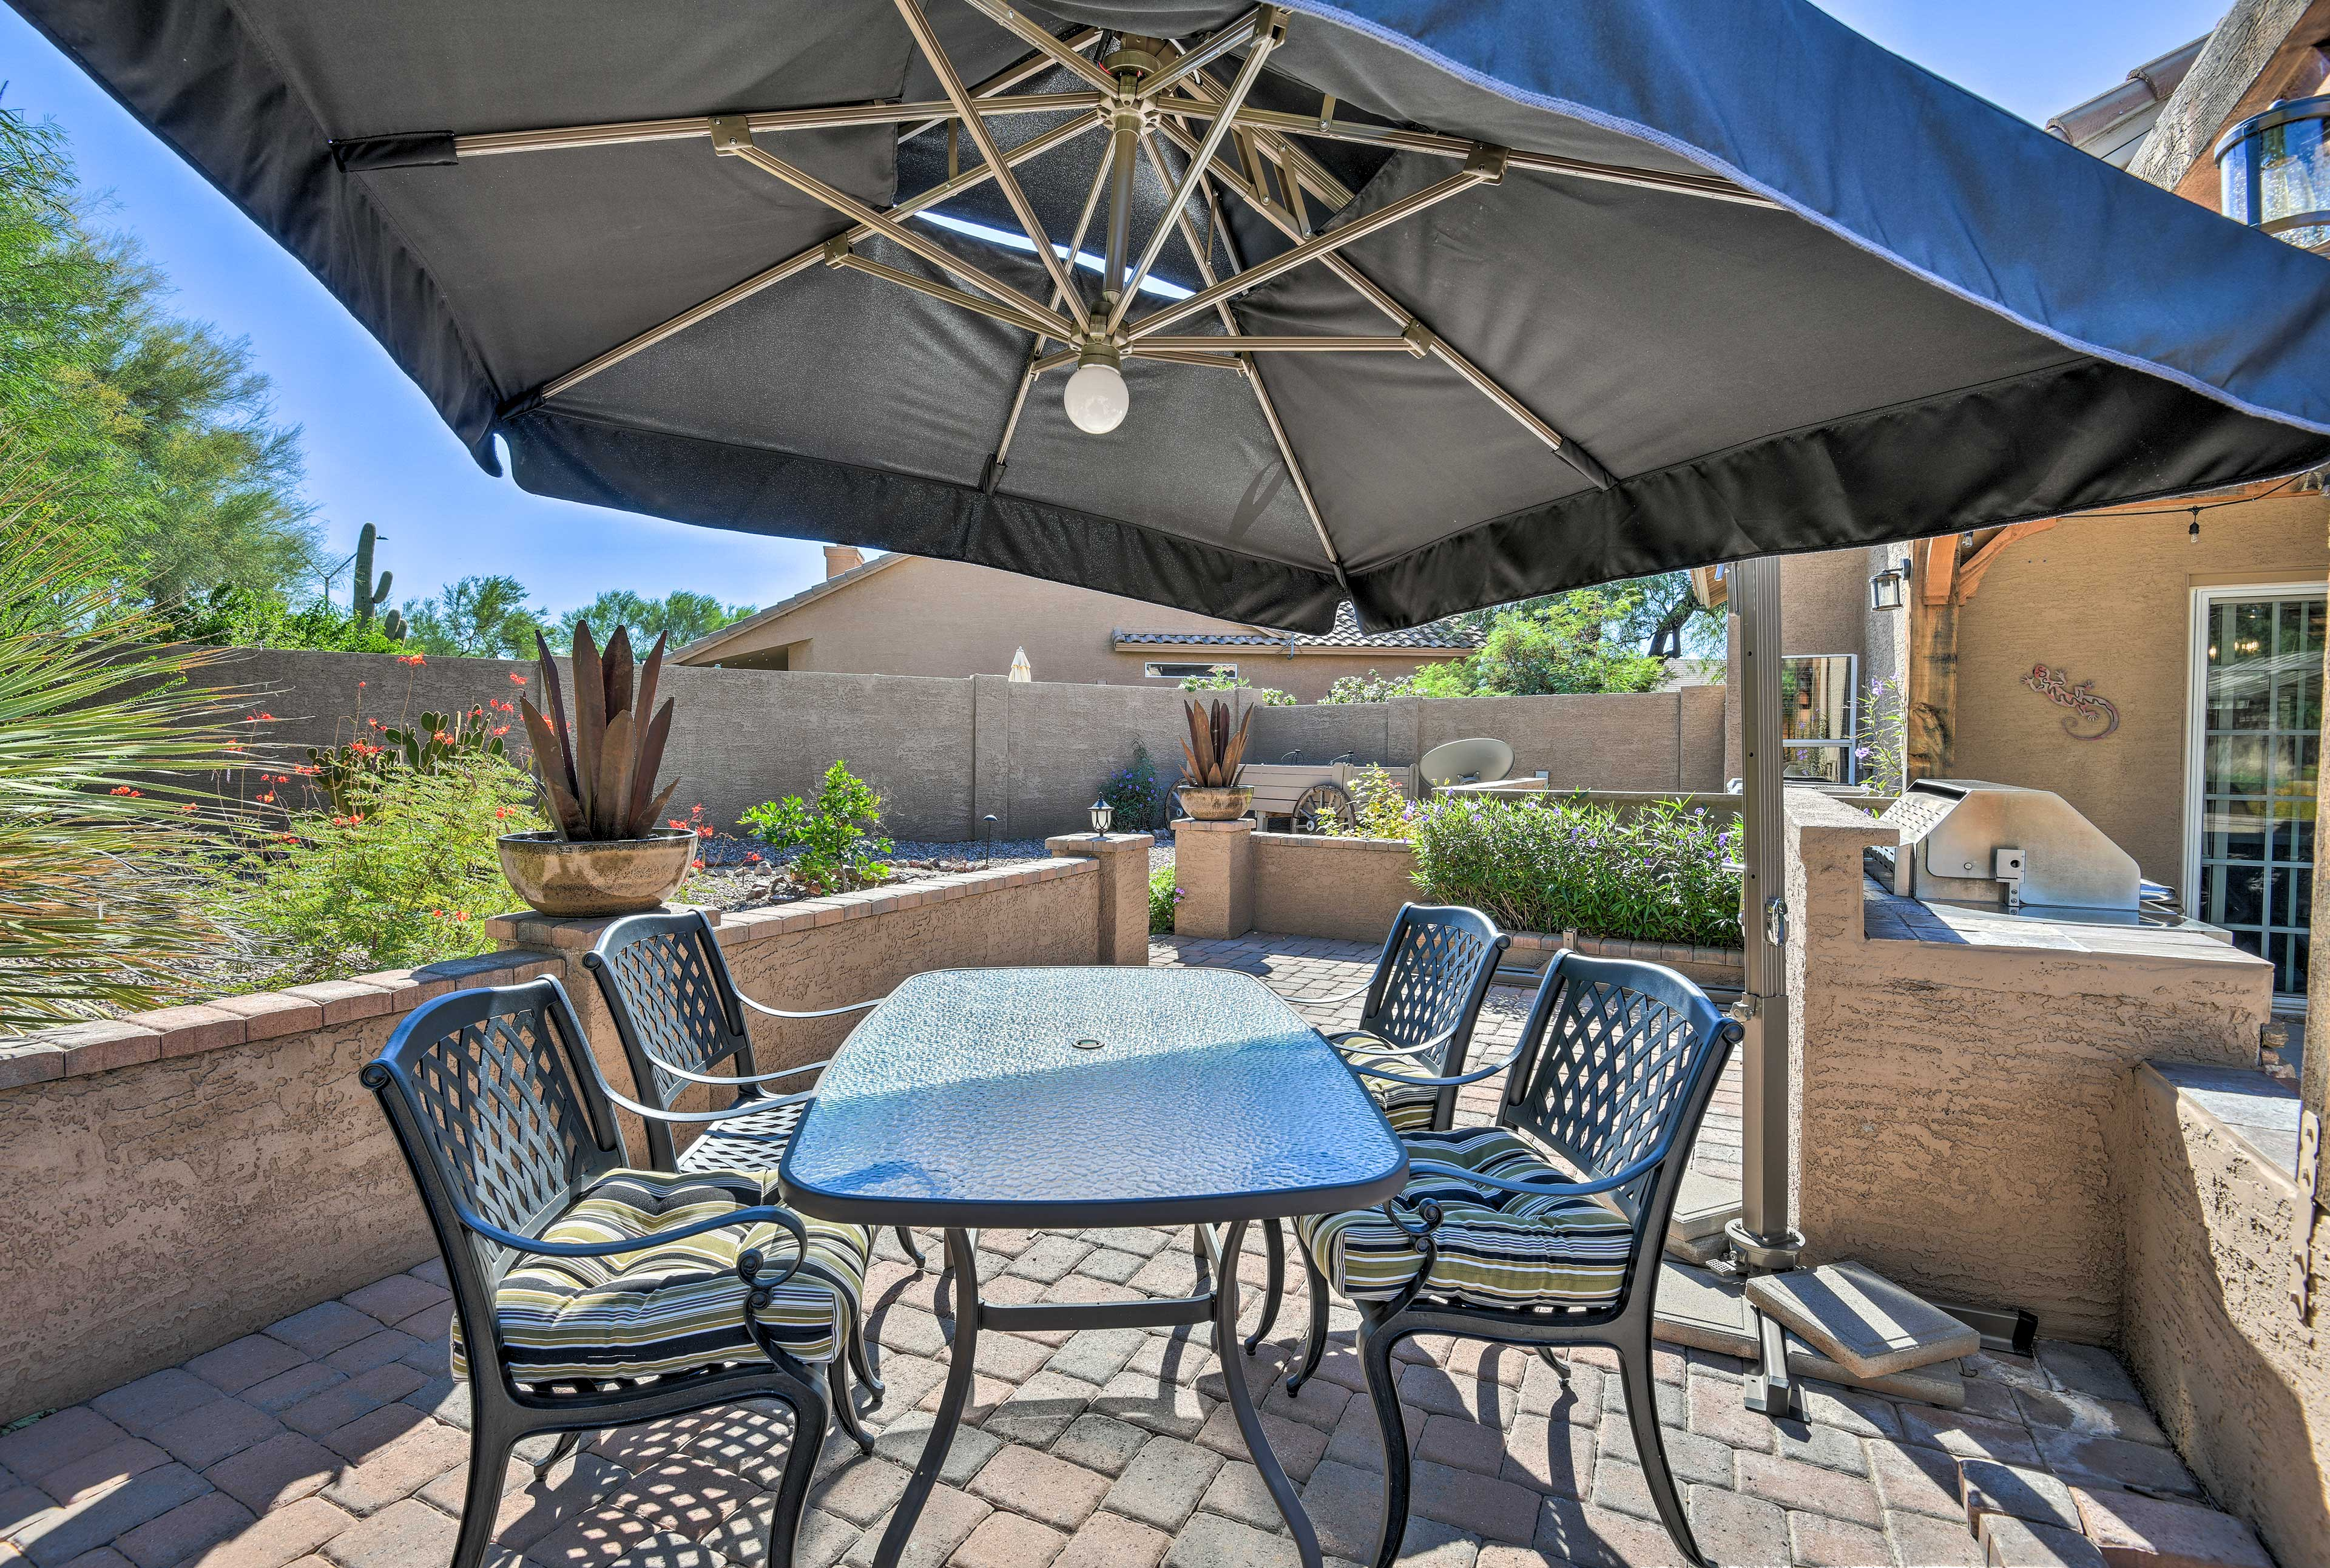 Be sure to enjoy an al fresco meal during your stay.